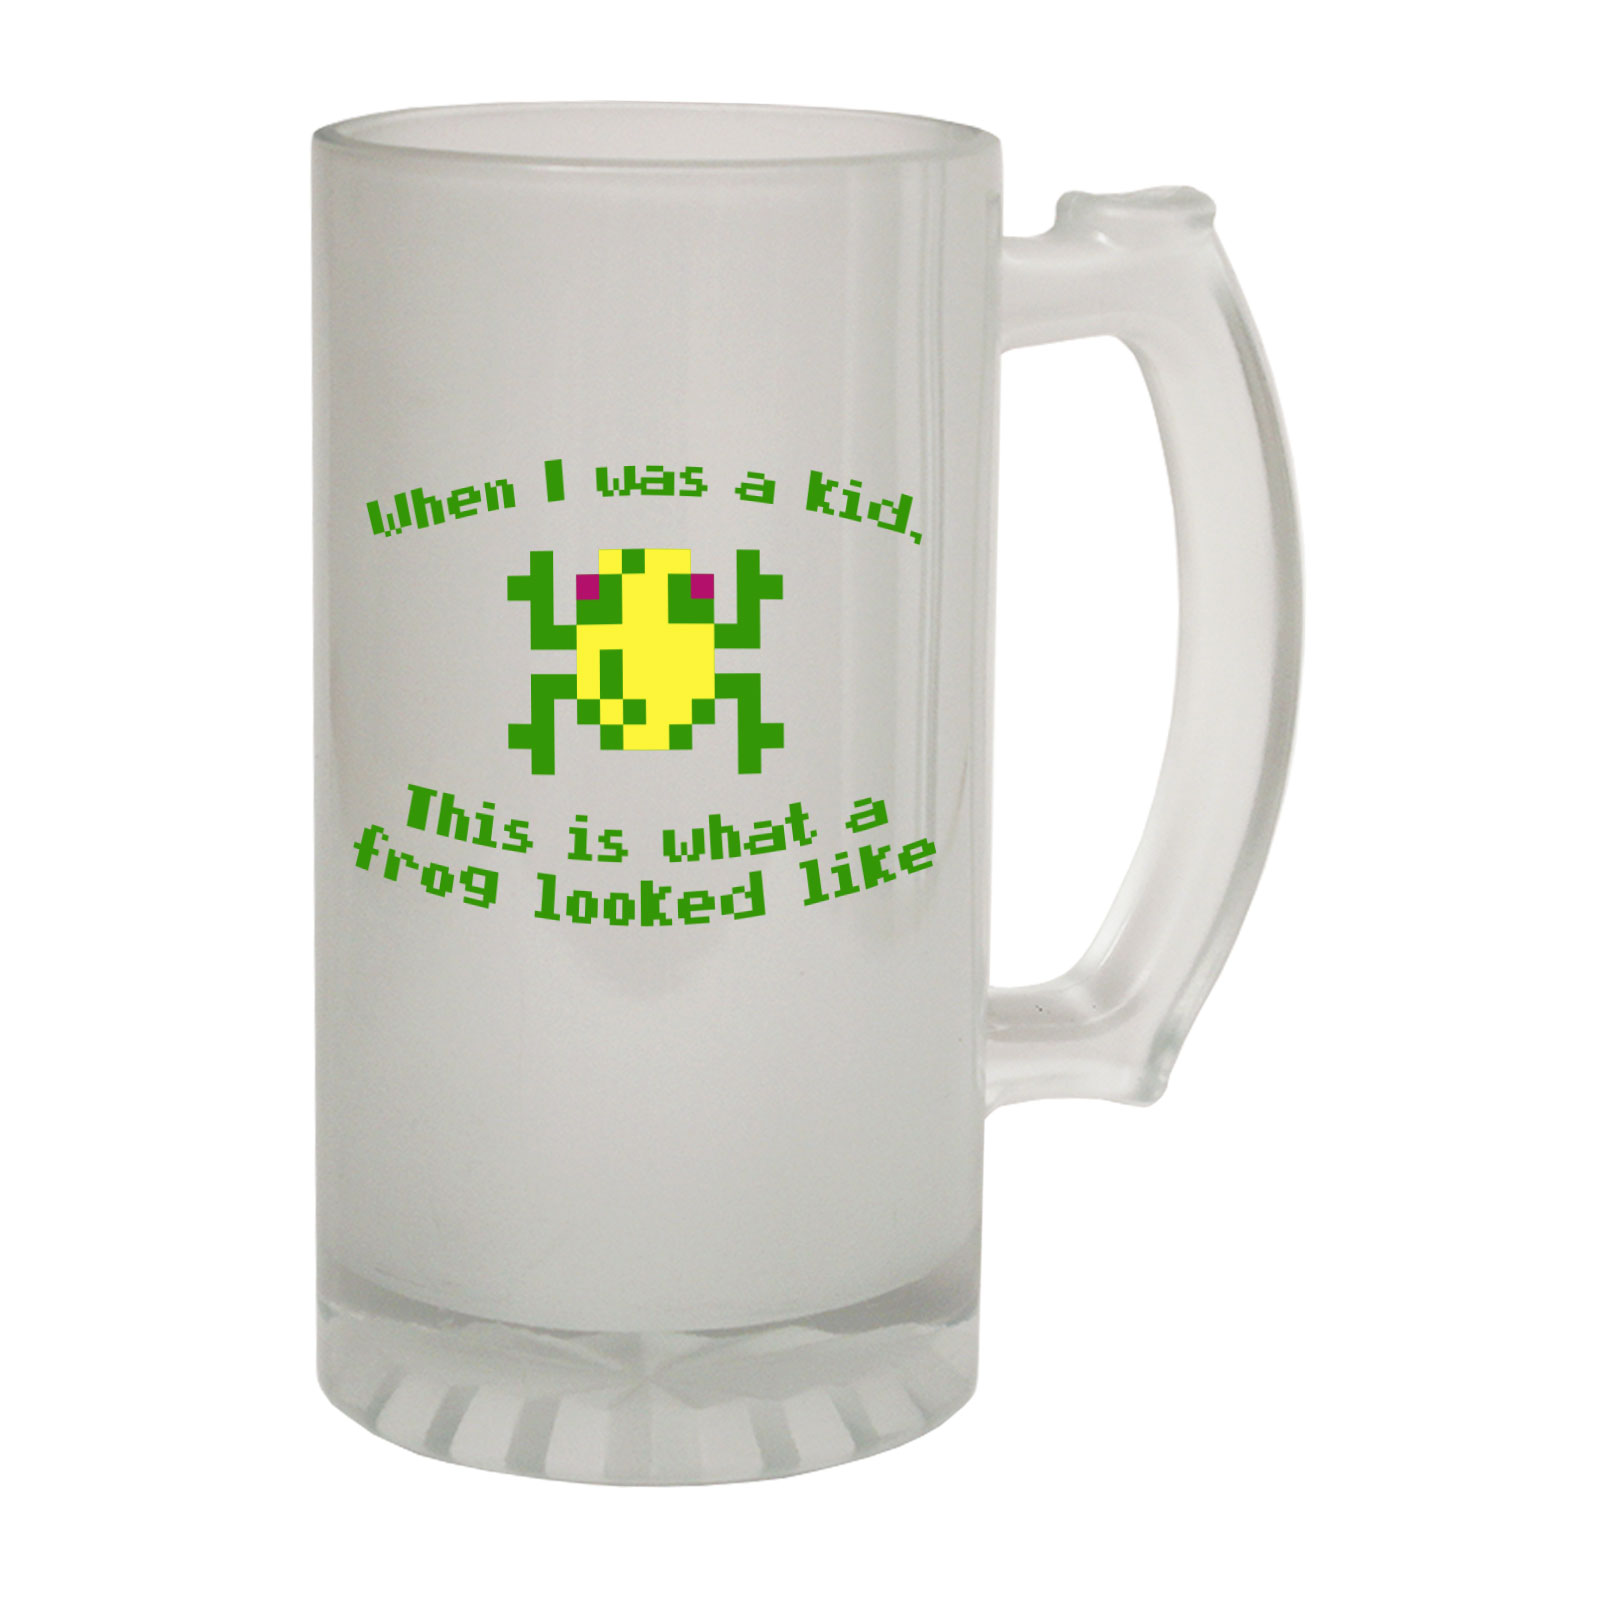 Home & Garden Beer Stein You Look Like A Bad Decision Funny Novelty Birthday Pint Glass